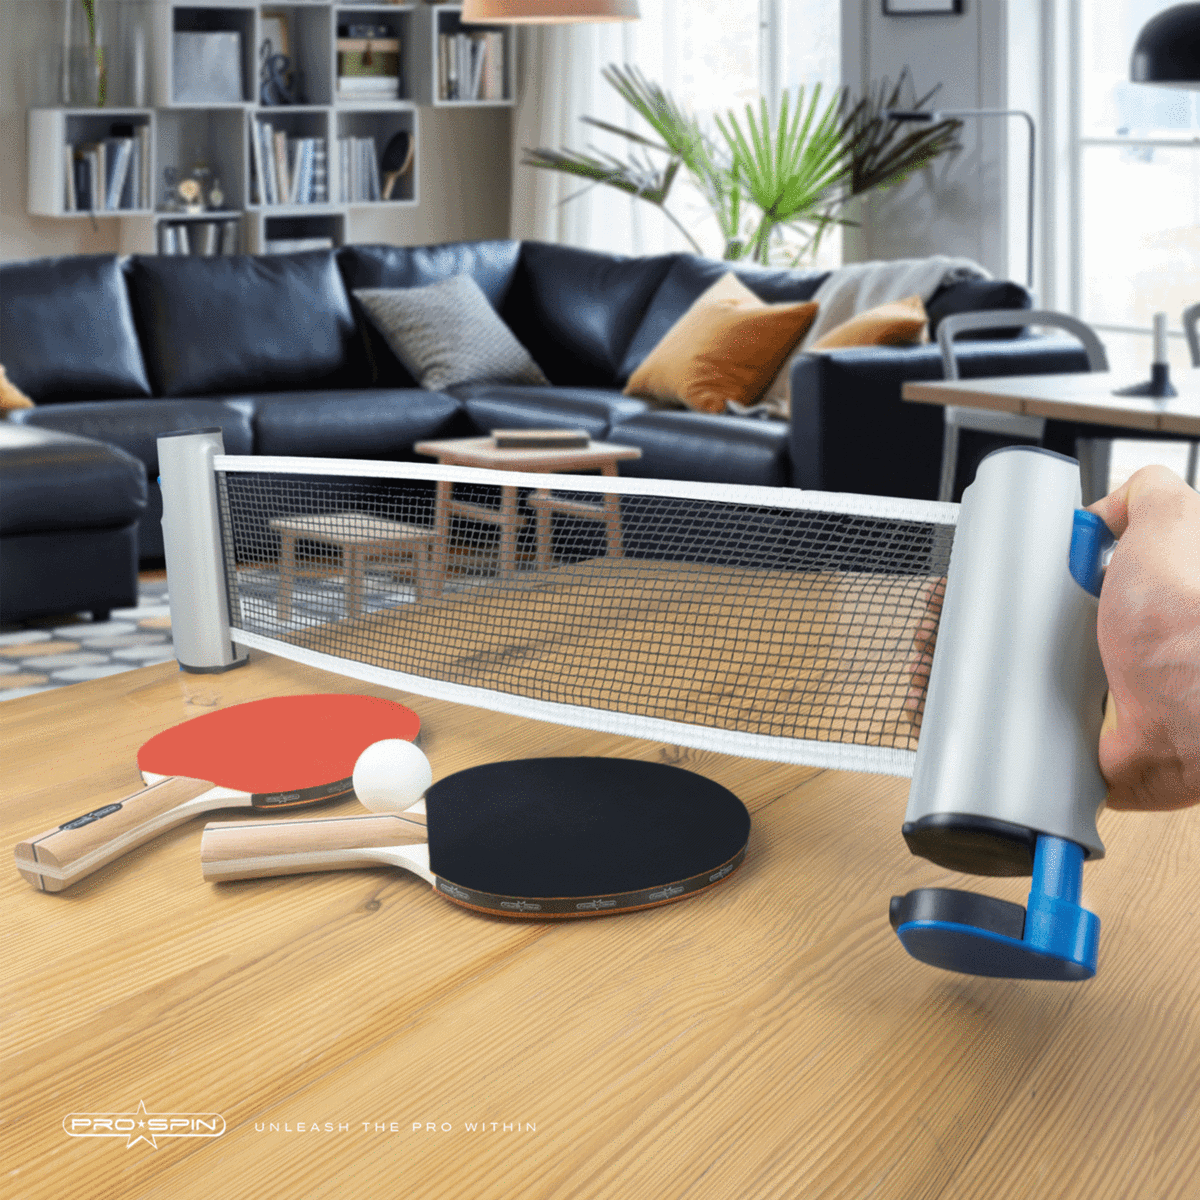 4-Player All-in-One Portable Table Tennis Set